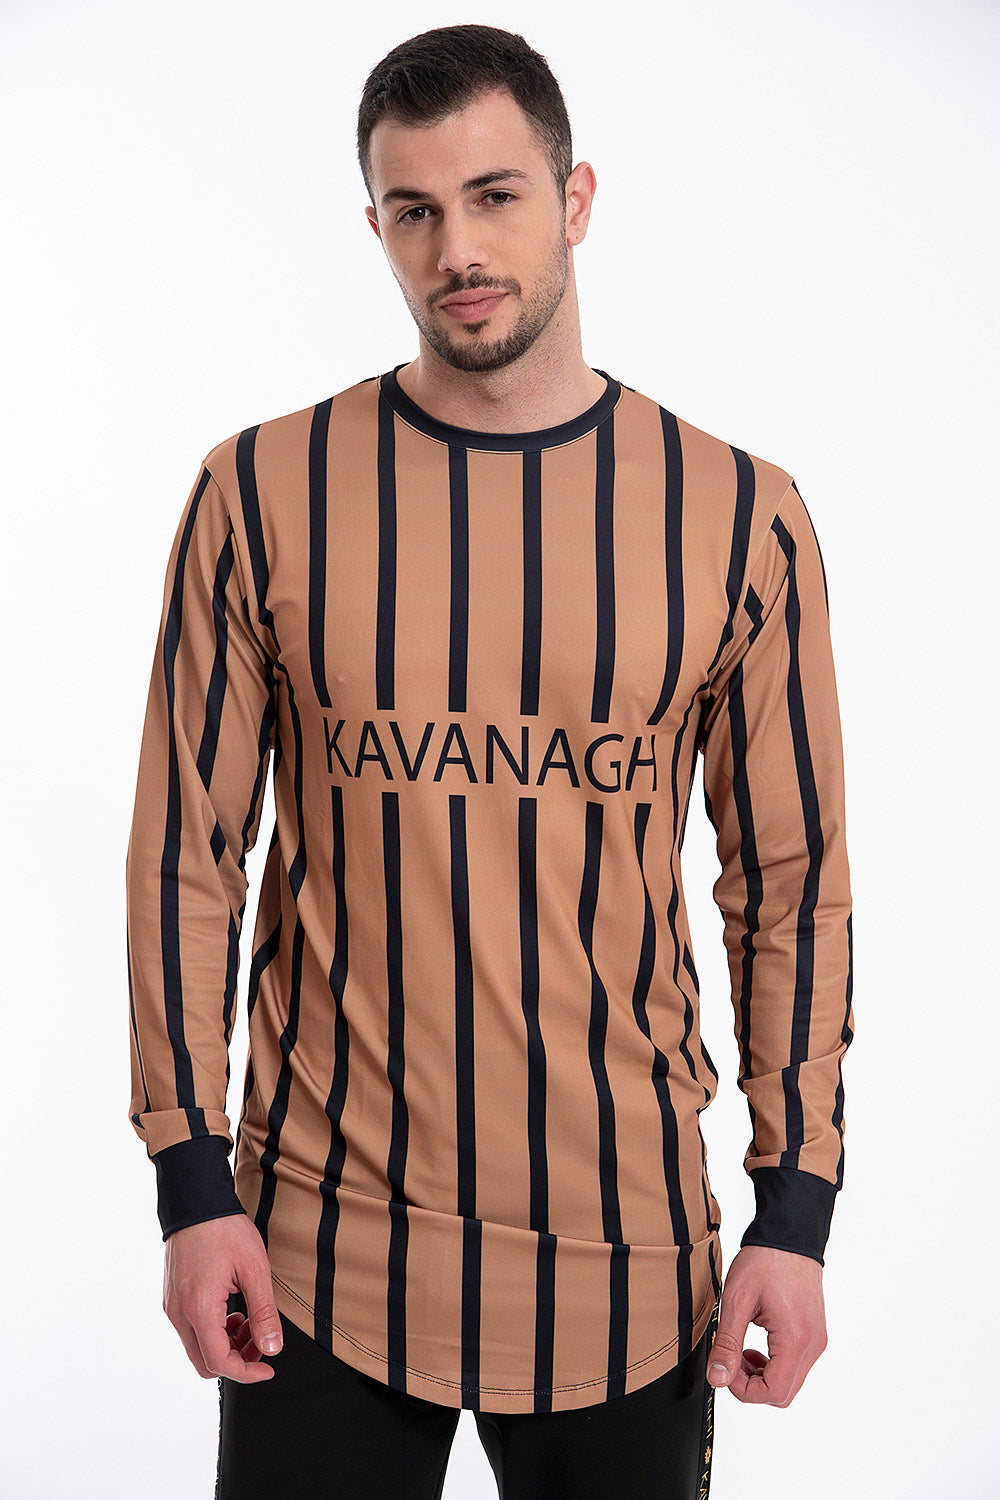 Kavanagh long sleeved stripes top